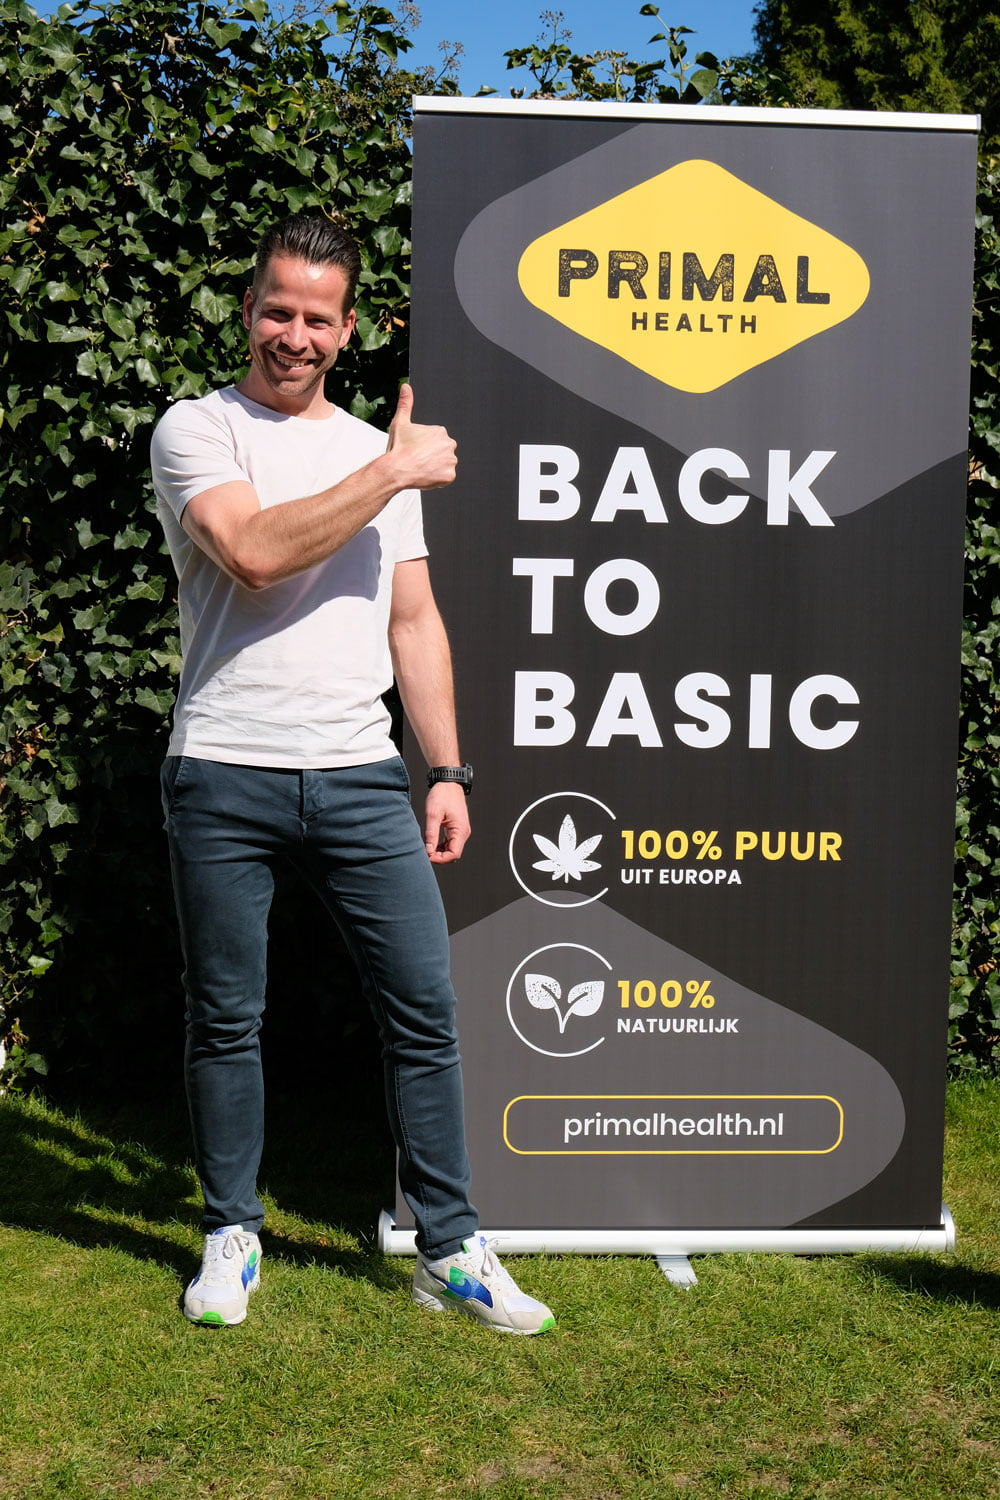 Primal Health back to basic